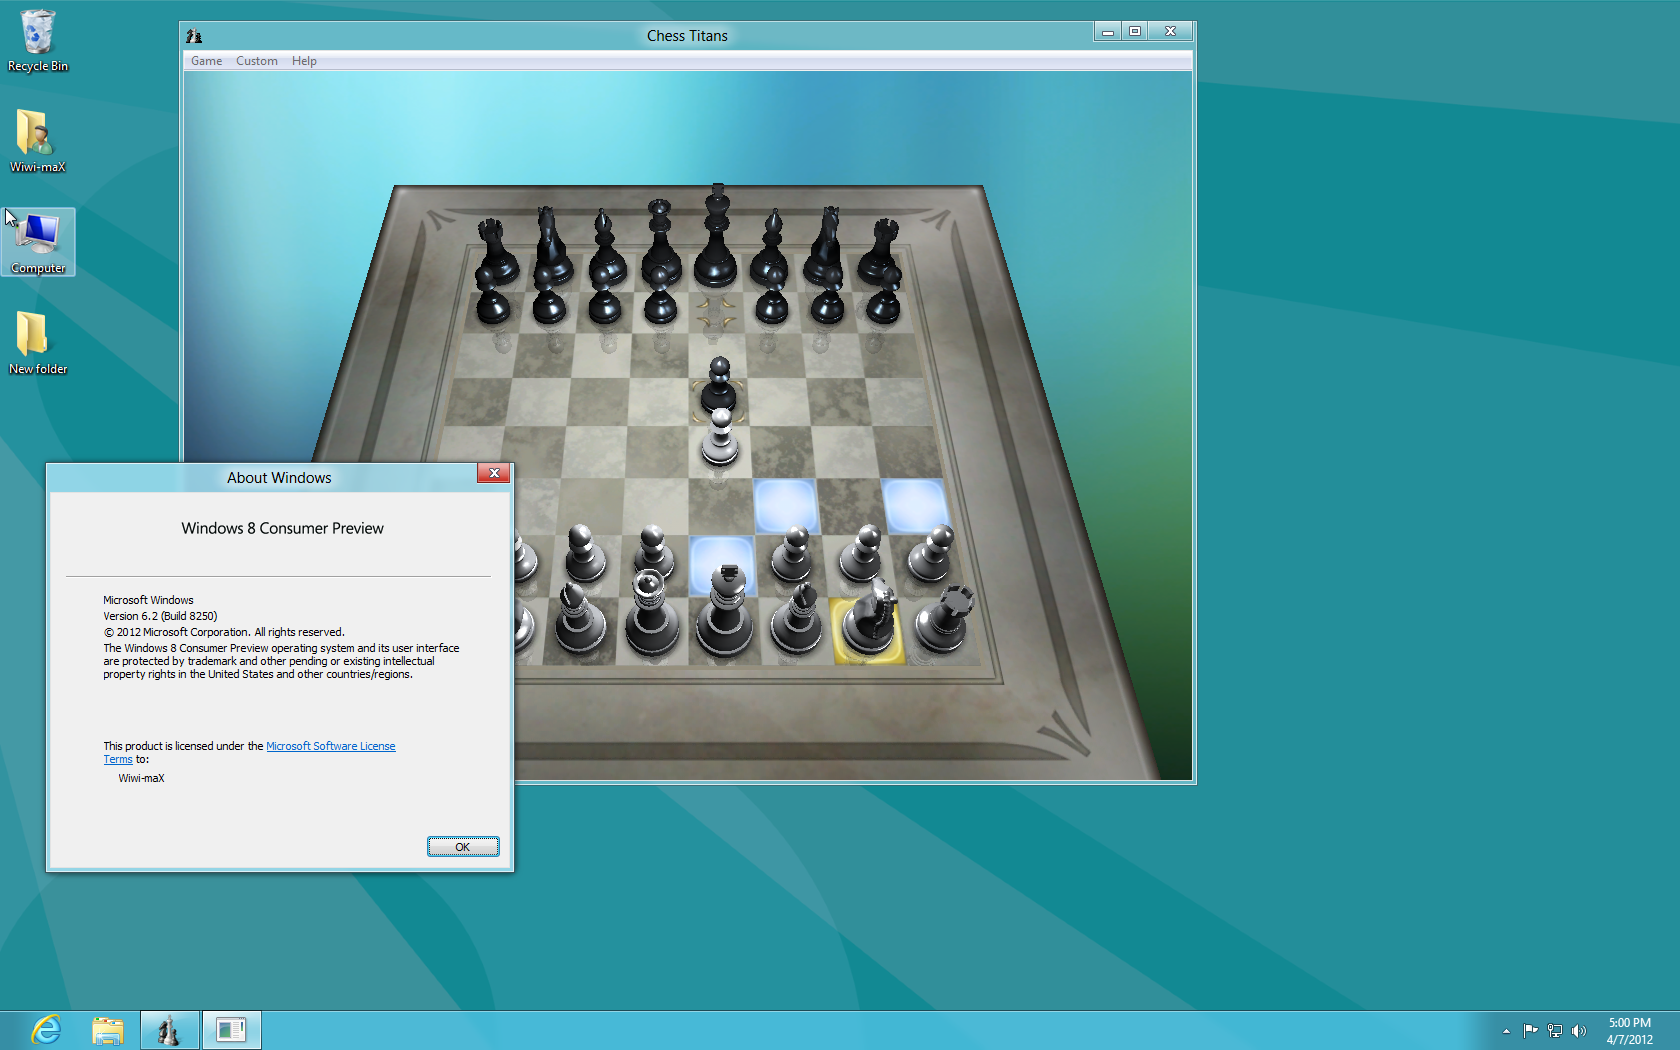 How do i install chess Titans on window 7 professional ...